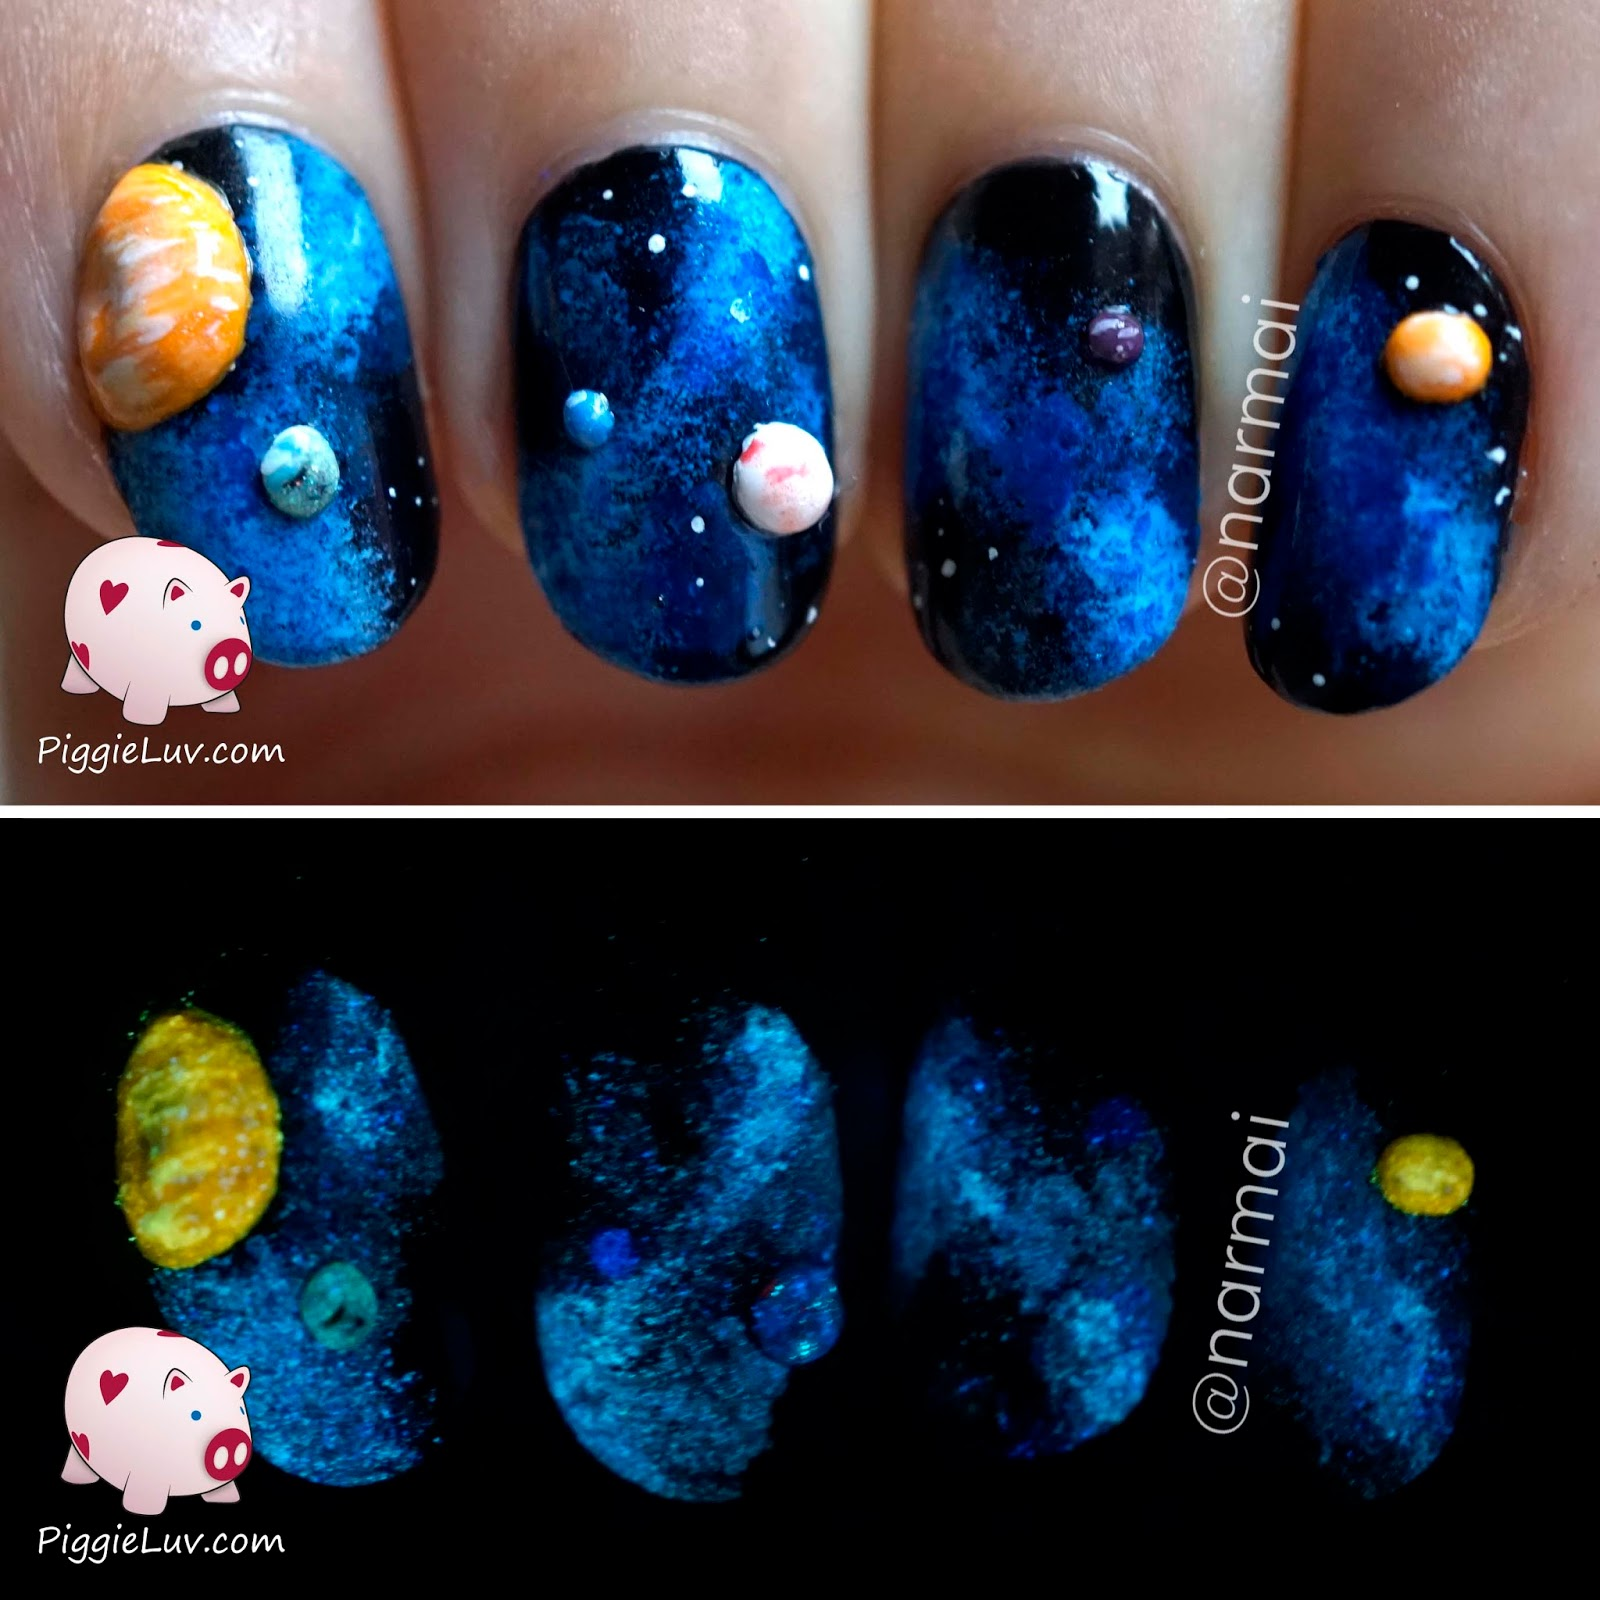 Piggieluv 3d galaxy nail art glow in the dark 3d galaxy nail art glow in the dark prinsesfo Gallery